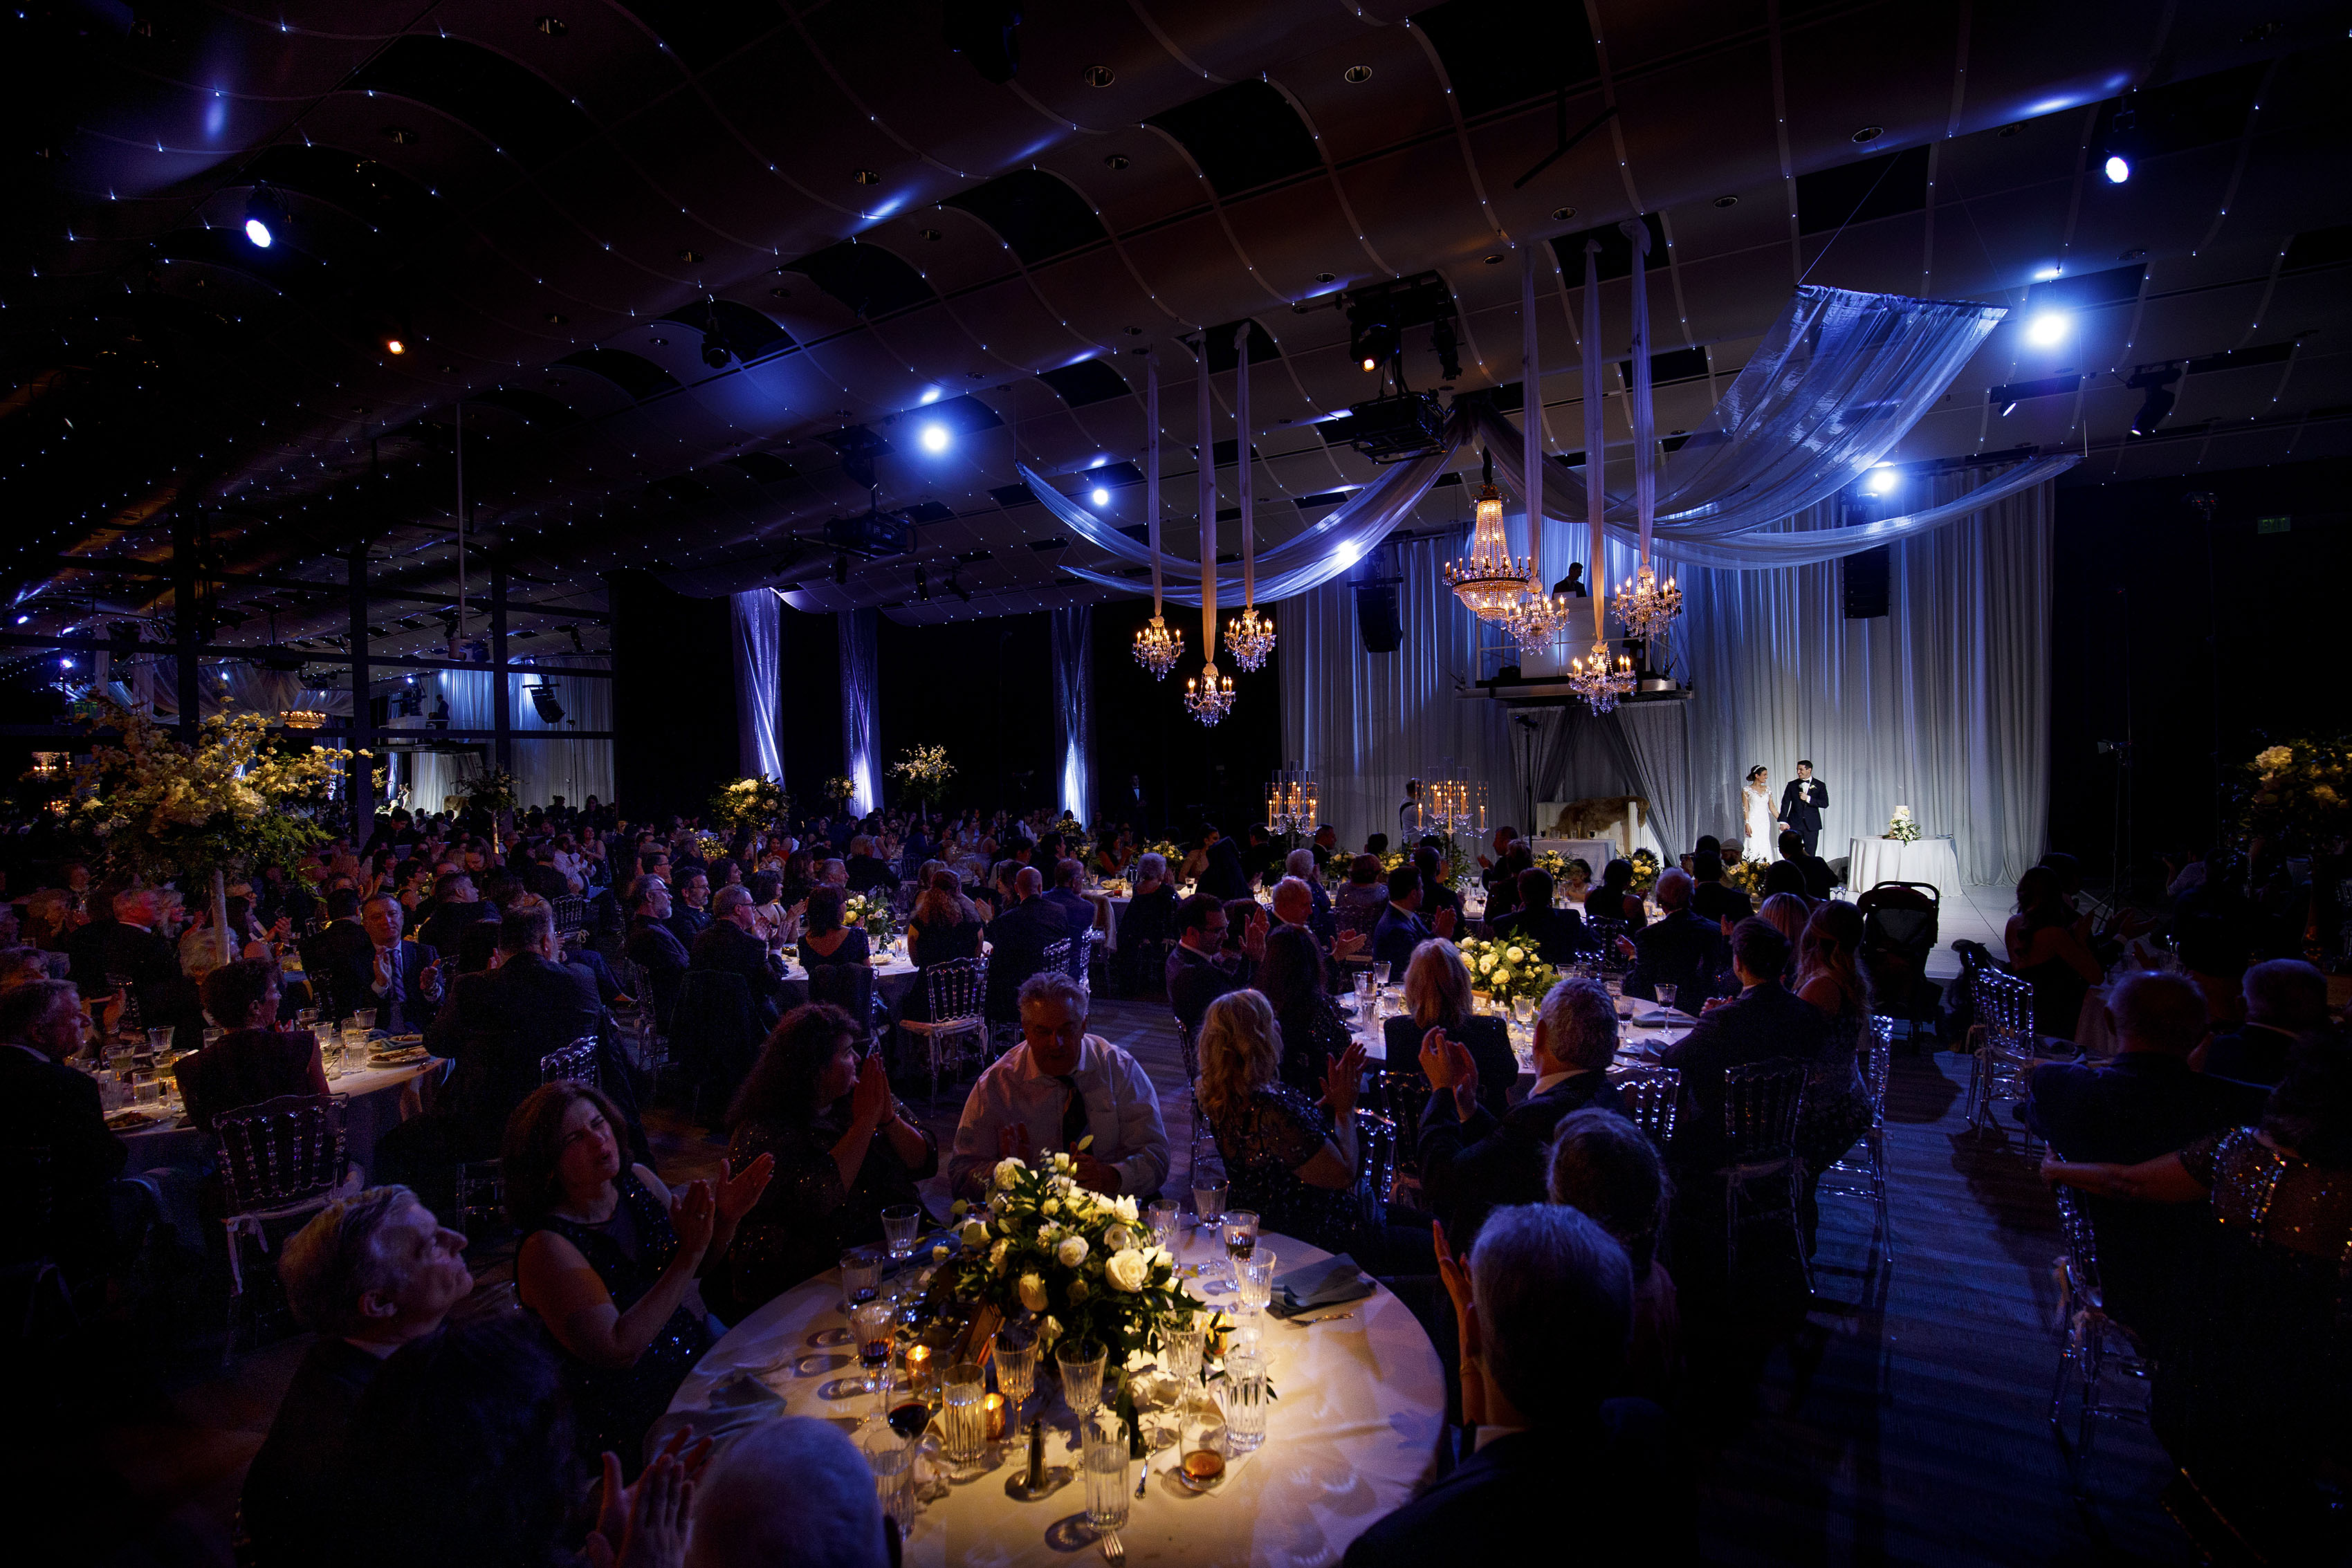 The bride and groom thank their guests during their greek wedding reception at the Seawell Ballroom in Denver